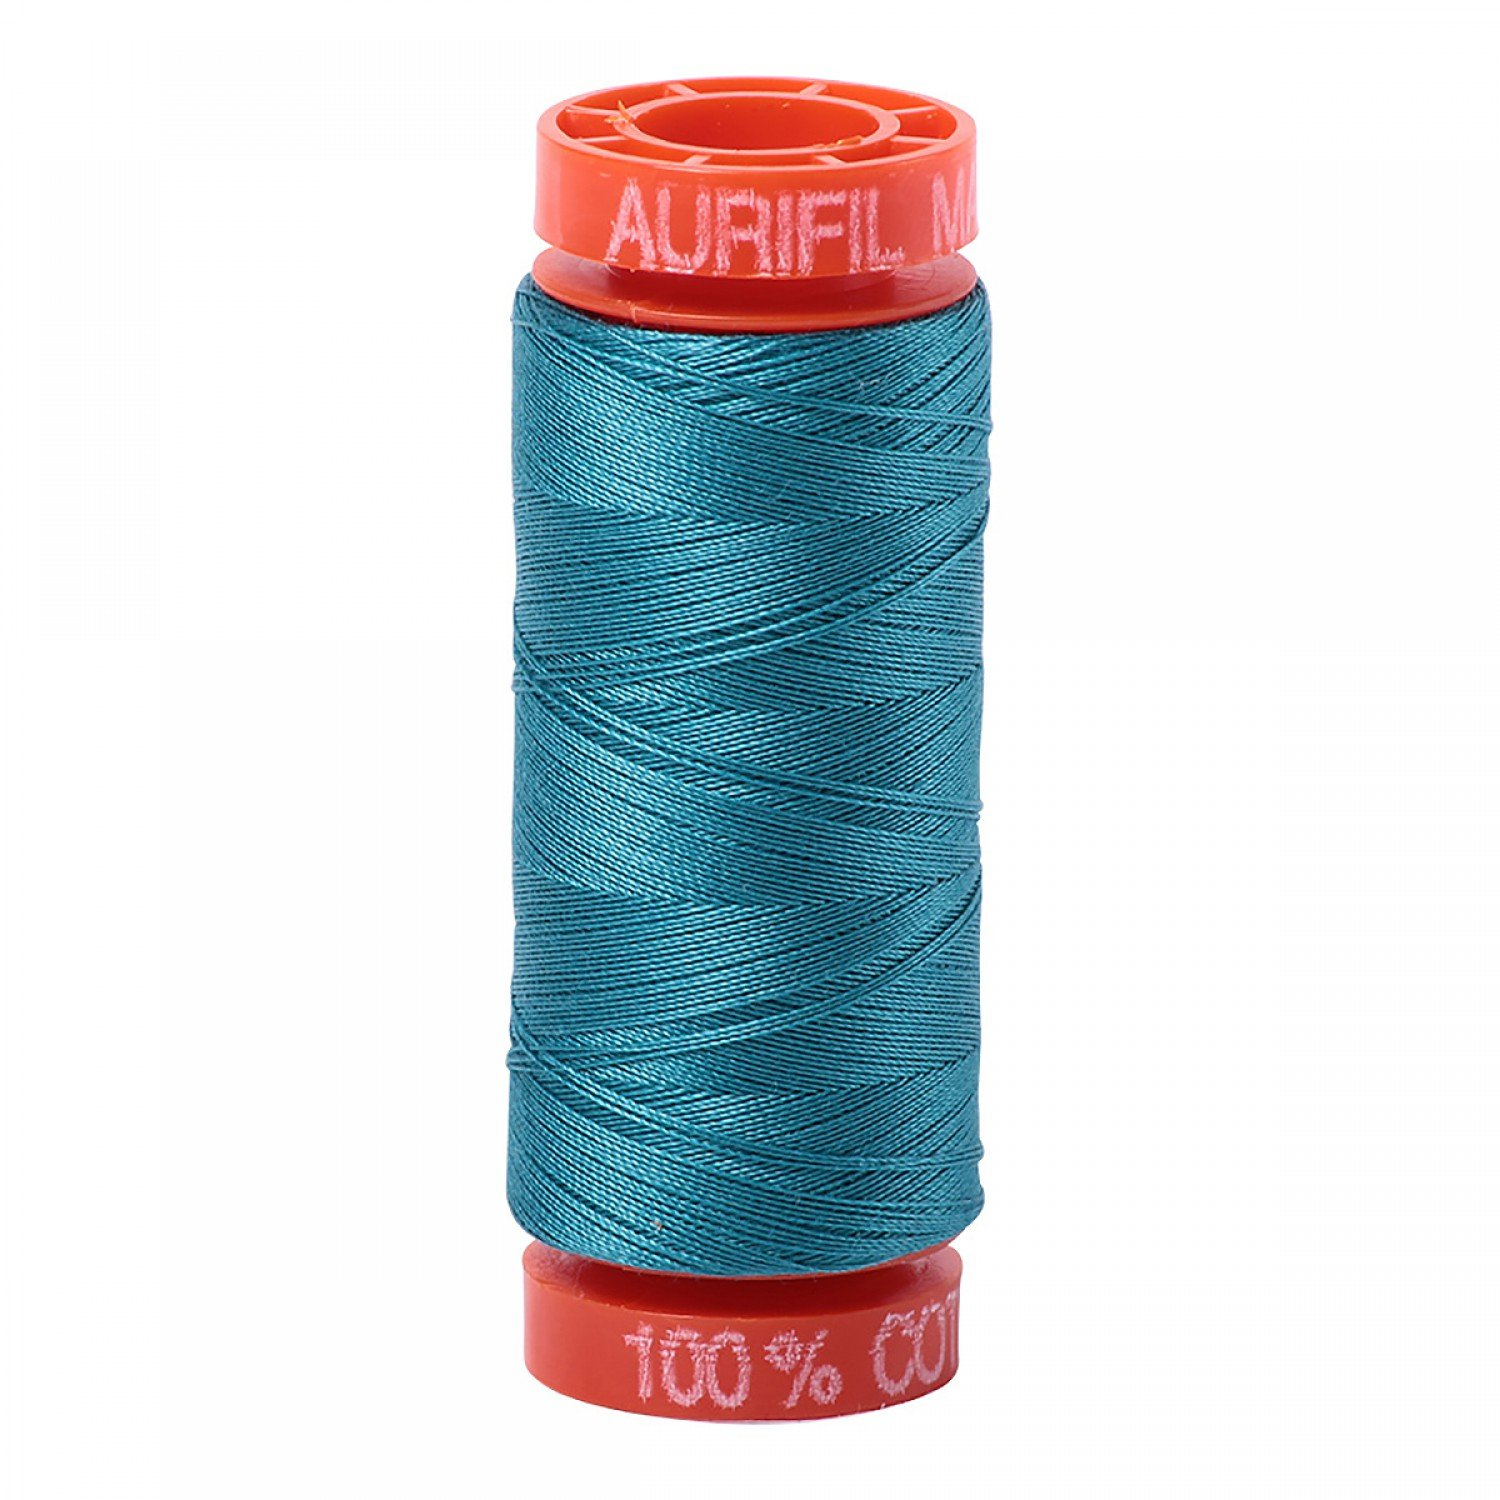 50 wt Aurifil - AS4182 - Dark Turquoise*